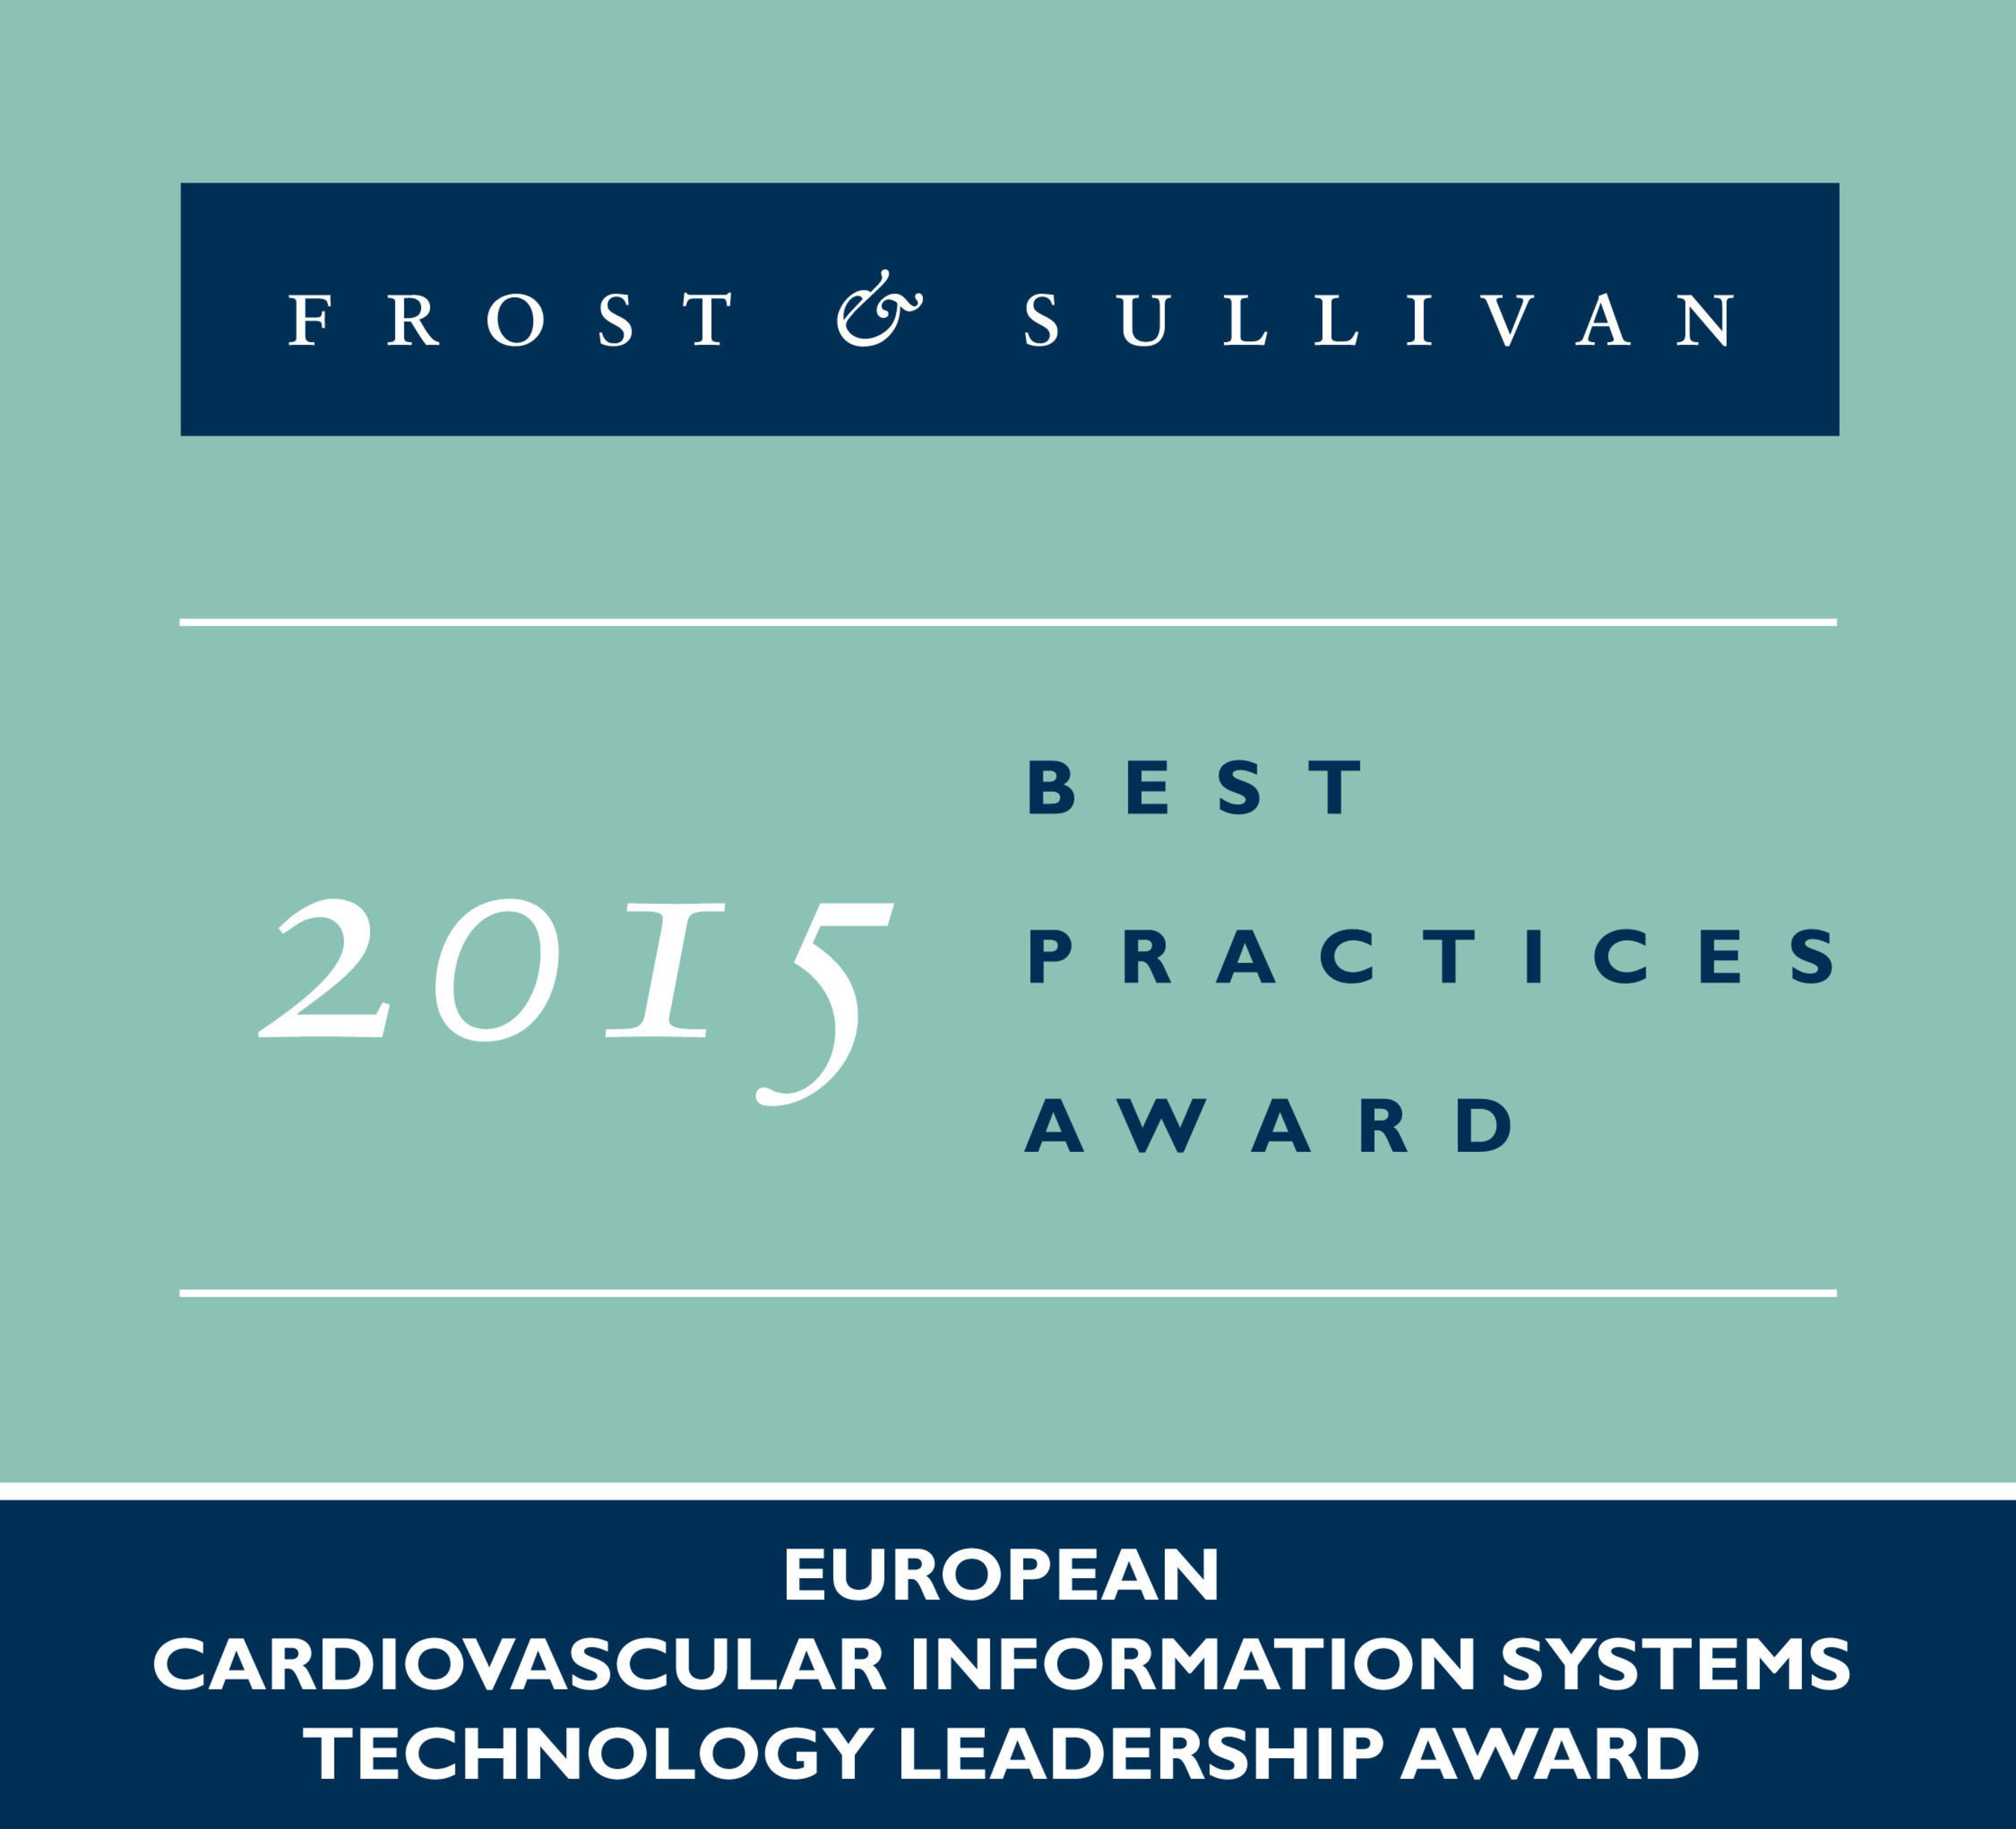 Frost & Sullivan Acclaims SUITESTENSA, the EBIT's Technically Advanced Cardiovascular Information